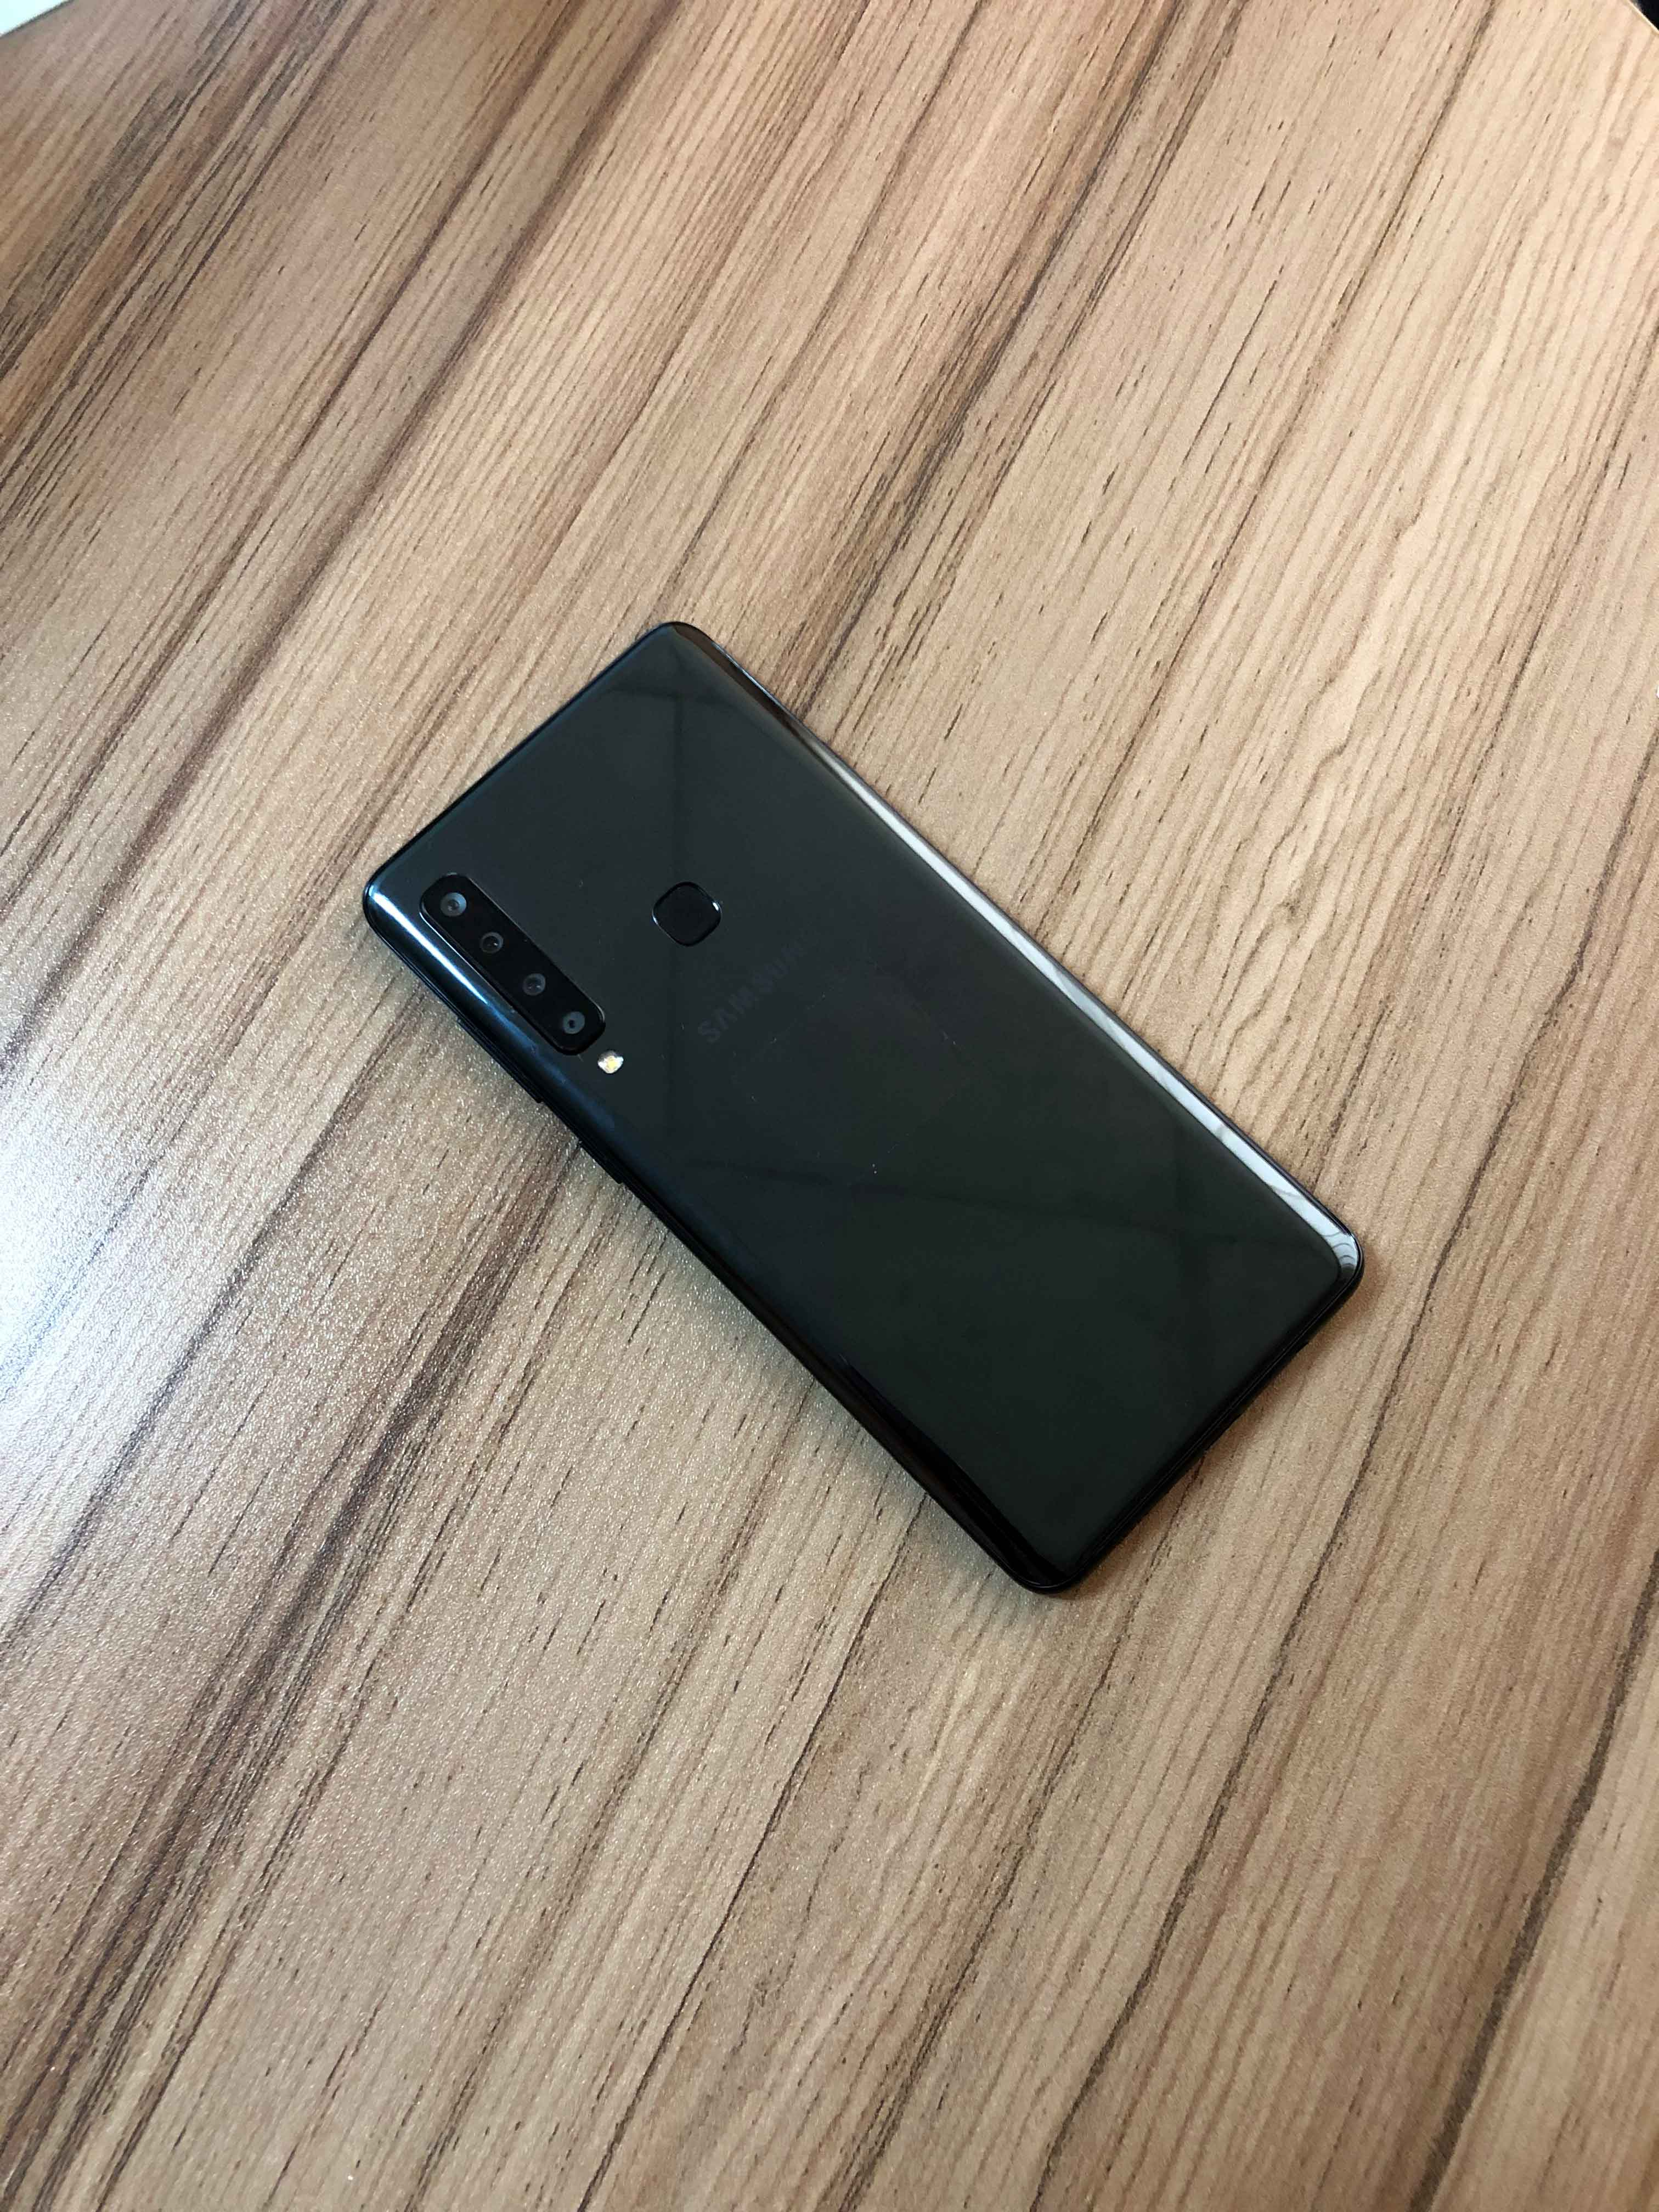 Samsung Galaxy A9 (2018) Review